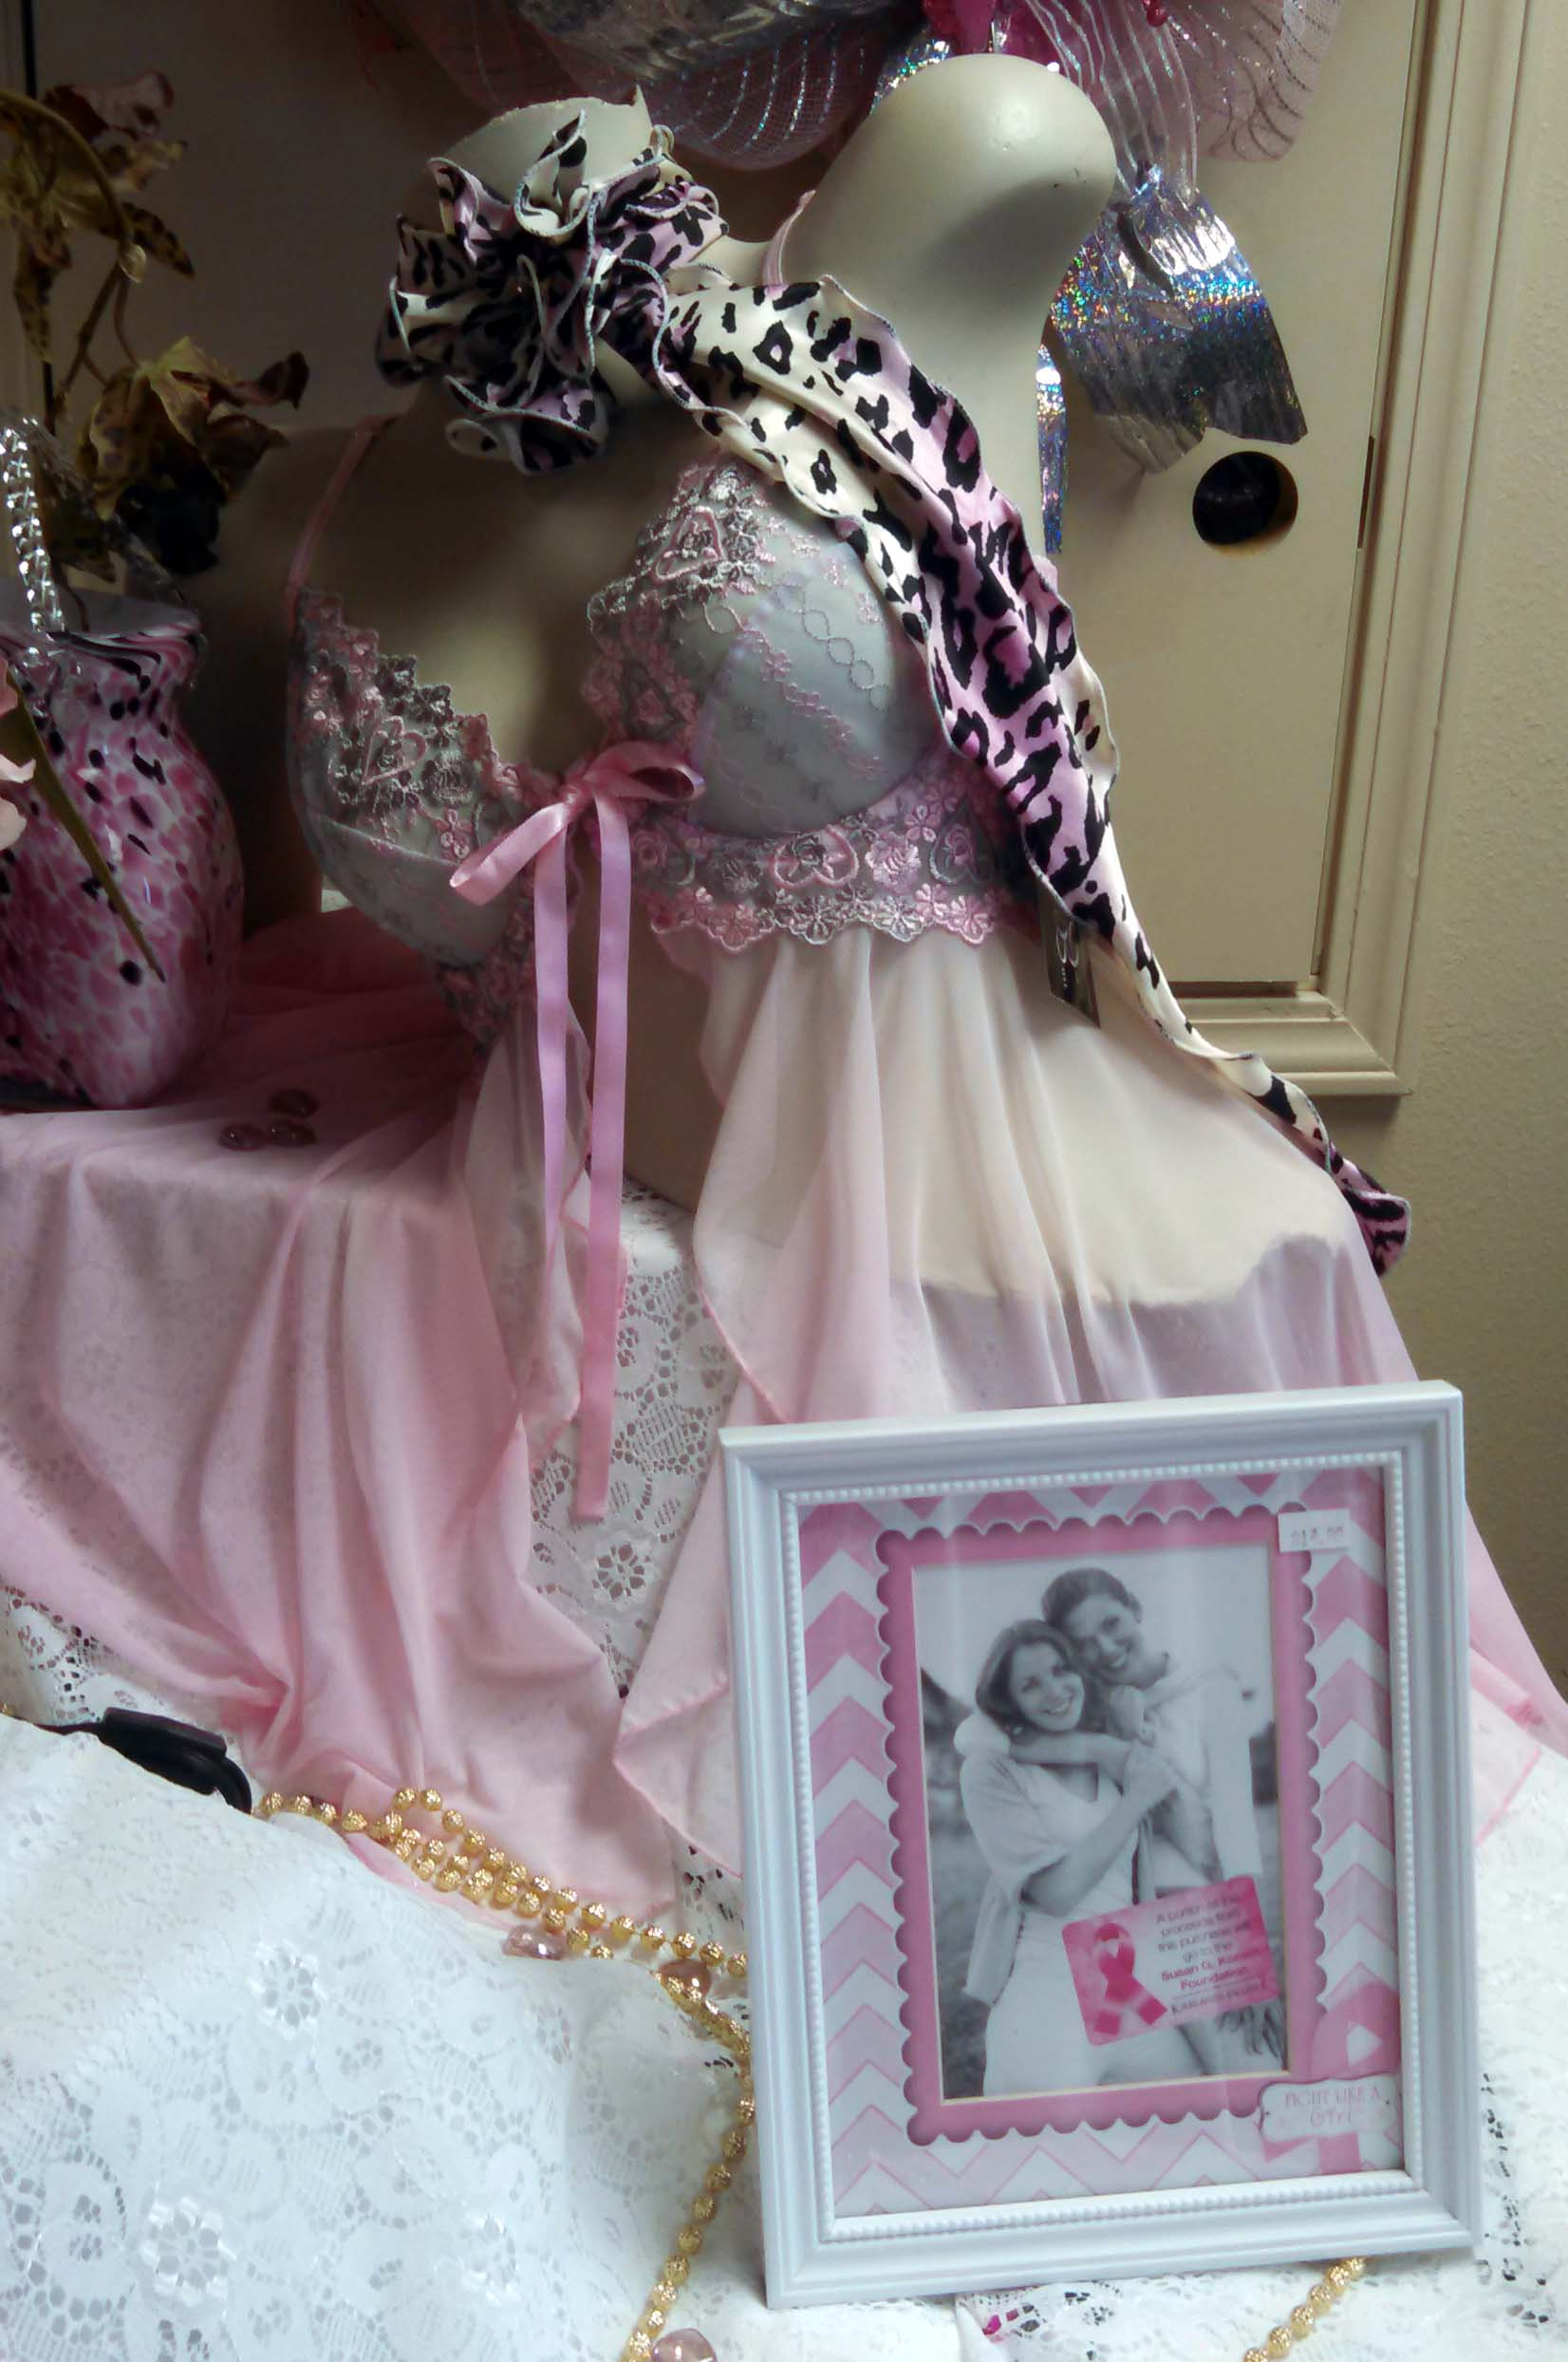 breast cancer awareness gifts at luv lingerie